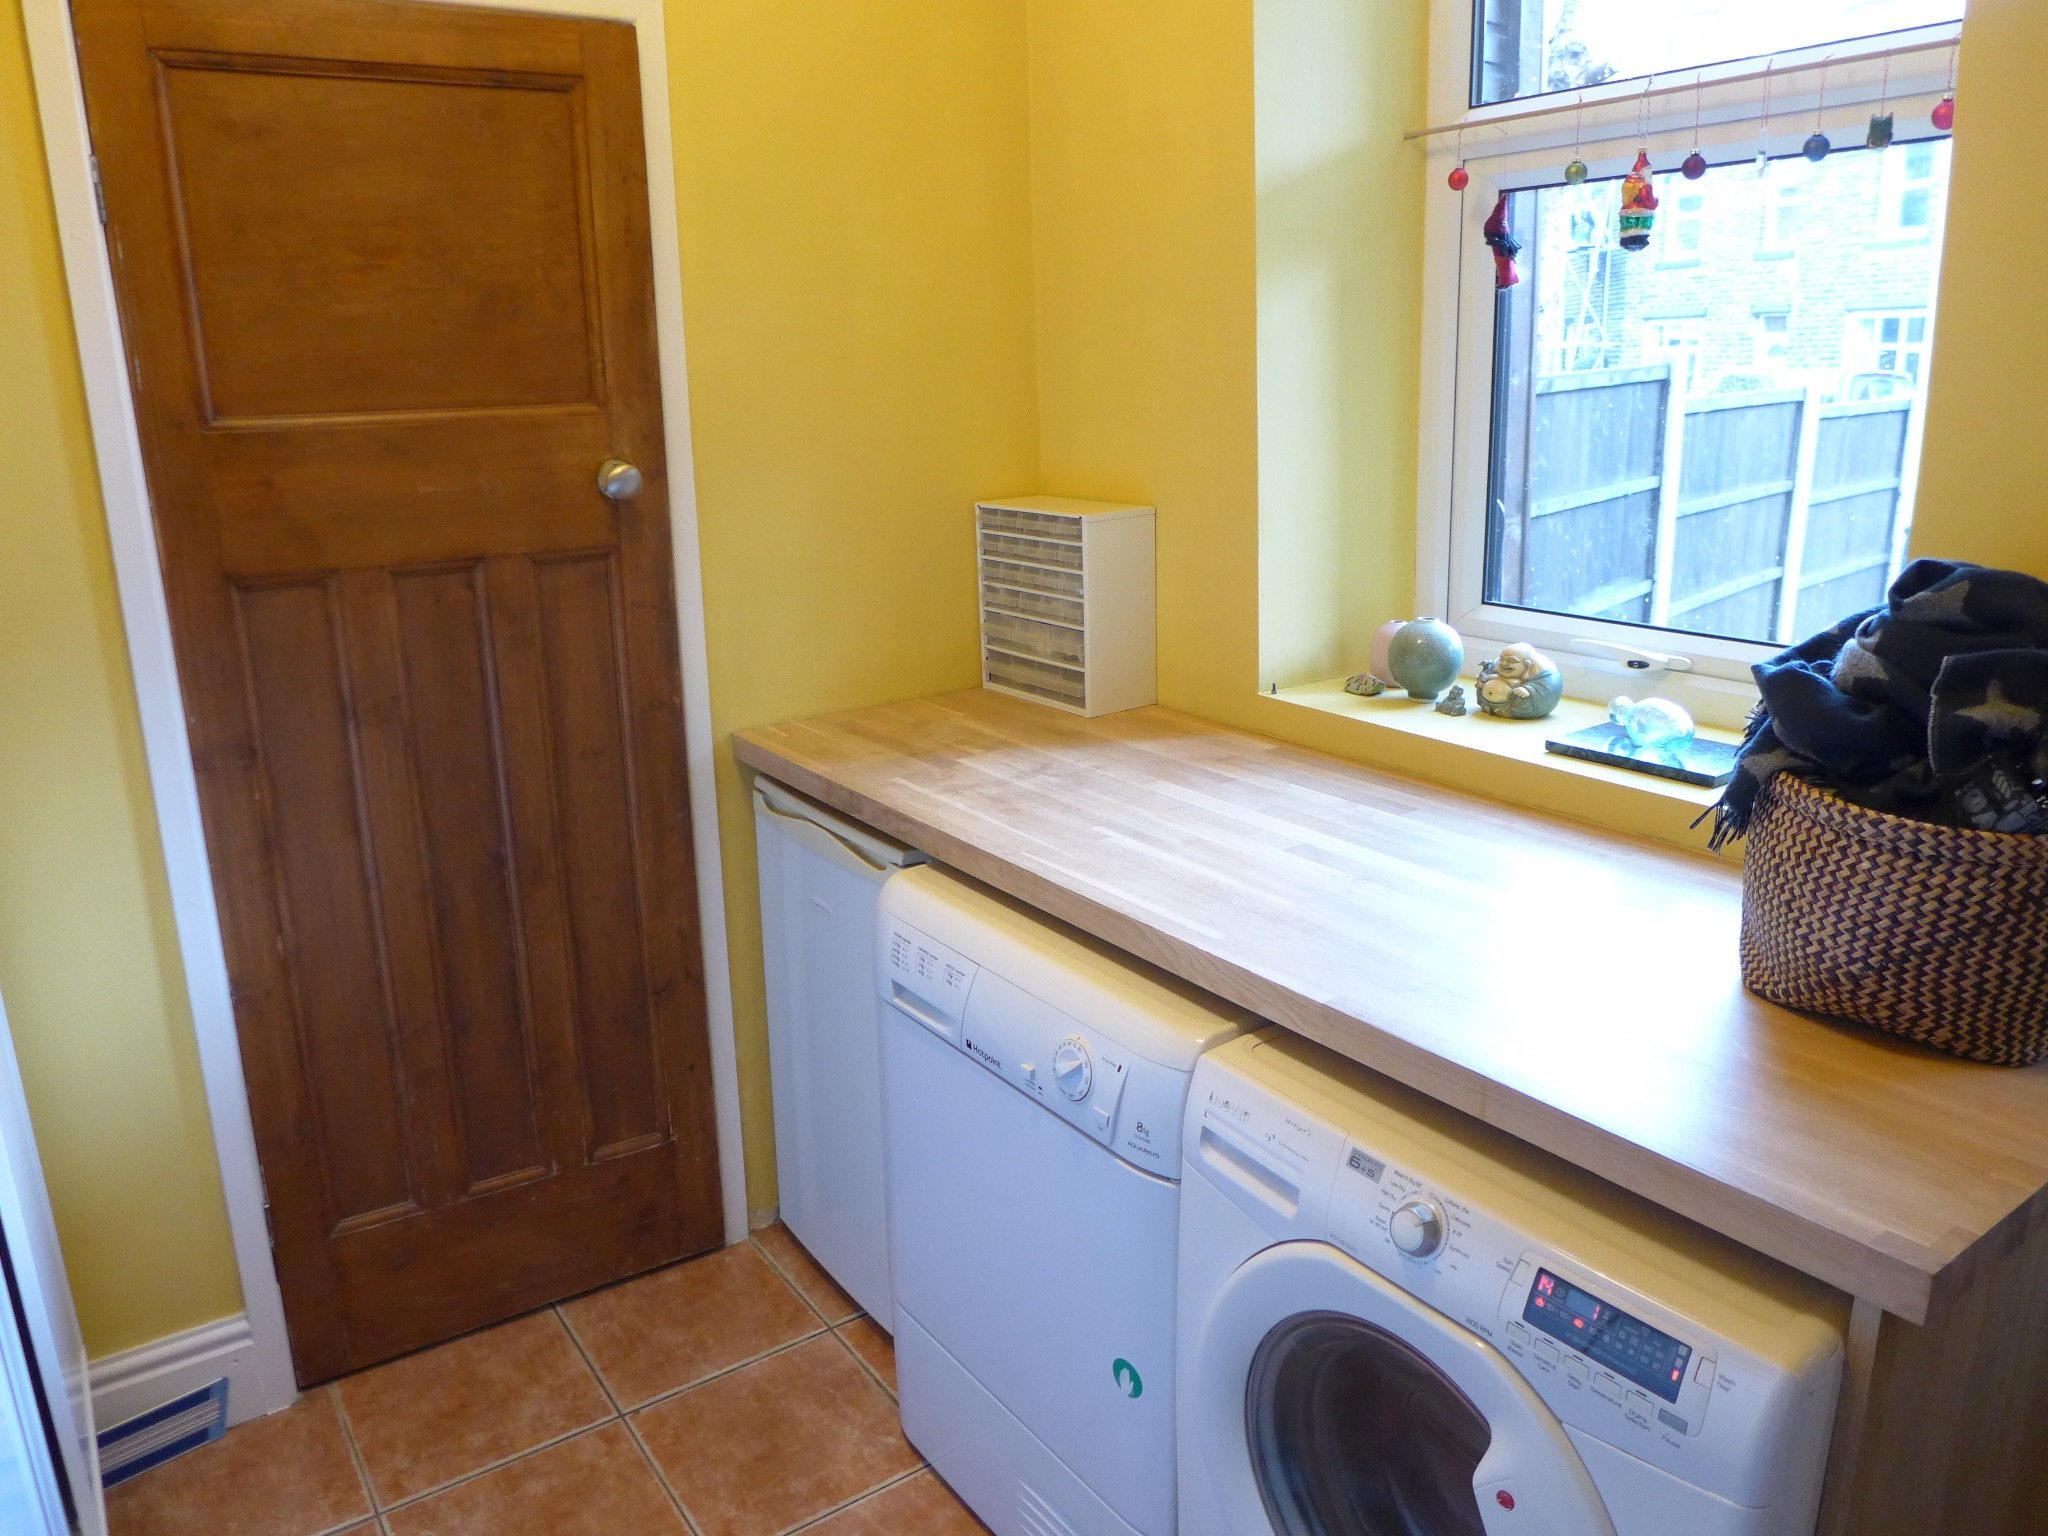 4 bedroom end terraced house For Sale in Calderdale - Photograph 13.